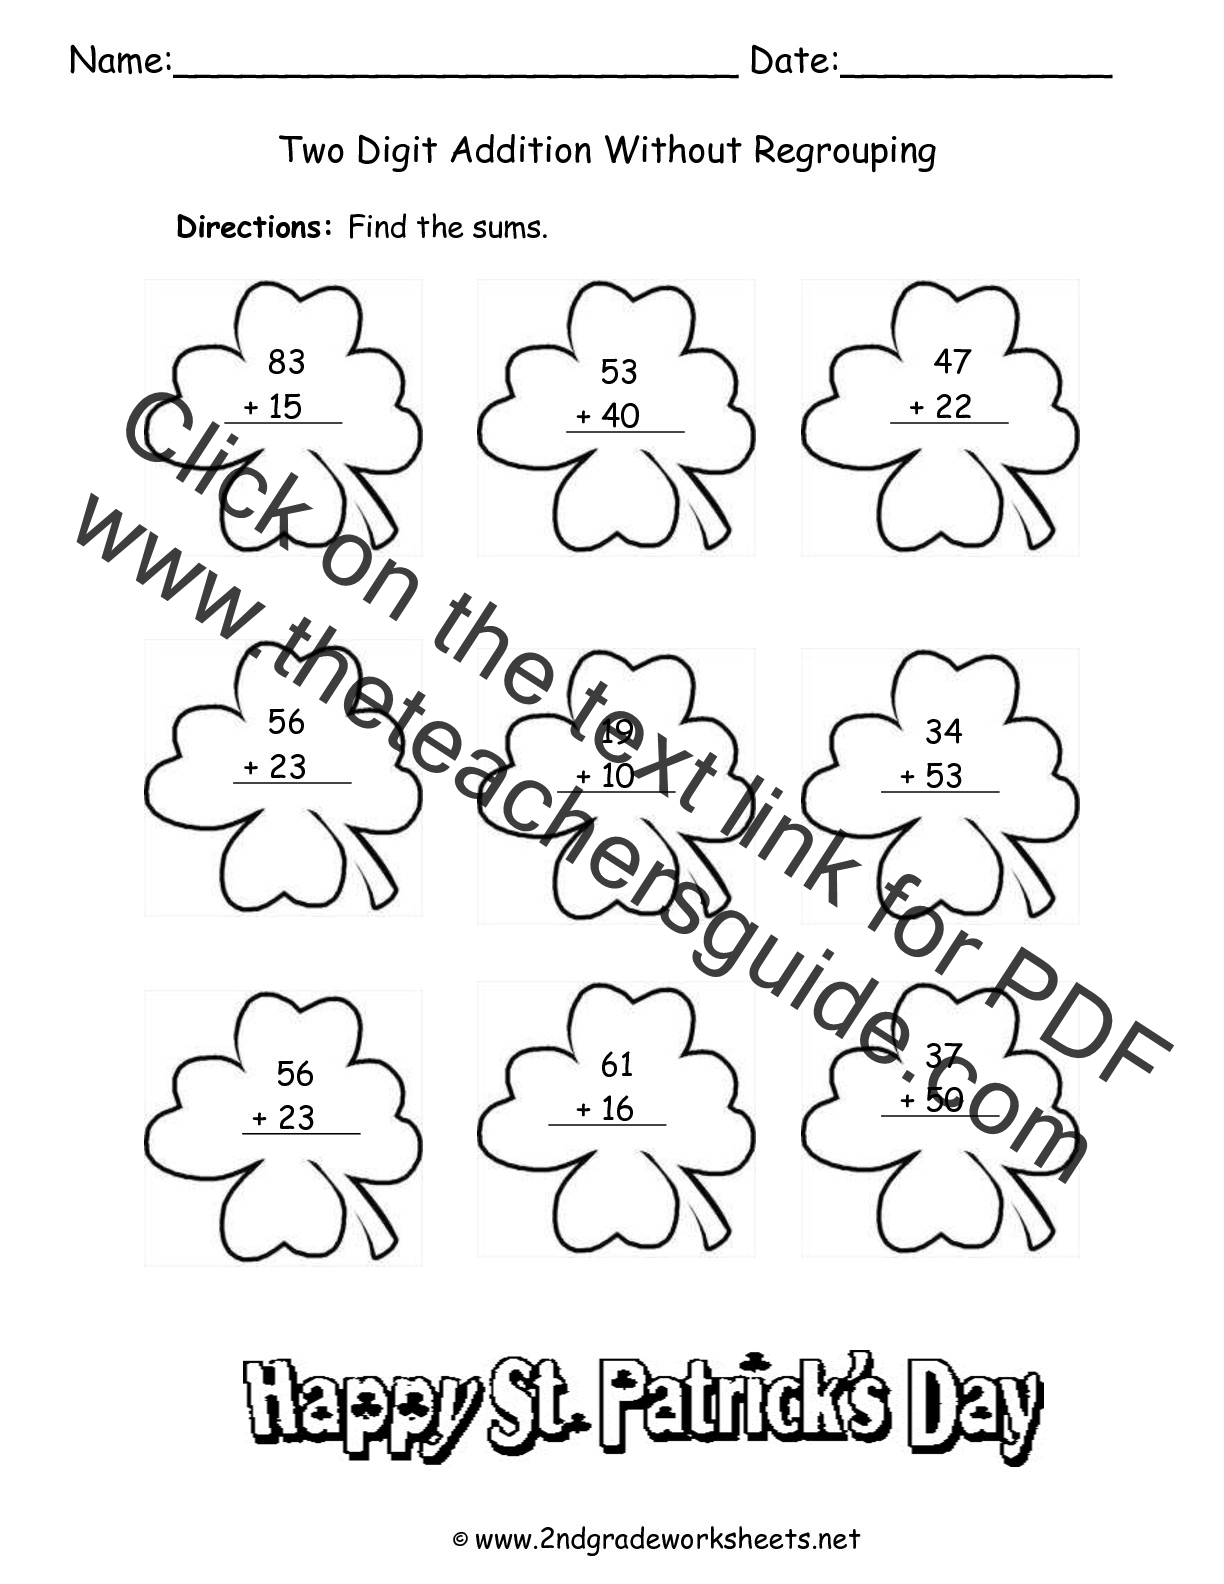 St Patricks Day Printouts and Worksheets – Adding Two Digit Numbers with Regrouping Worksheets